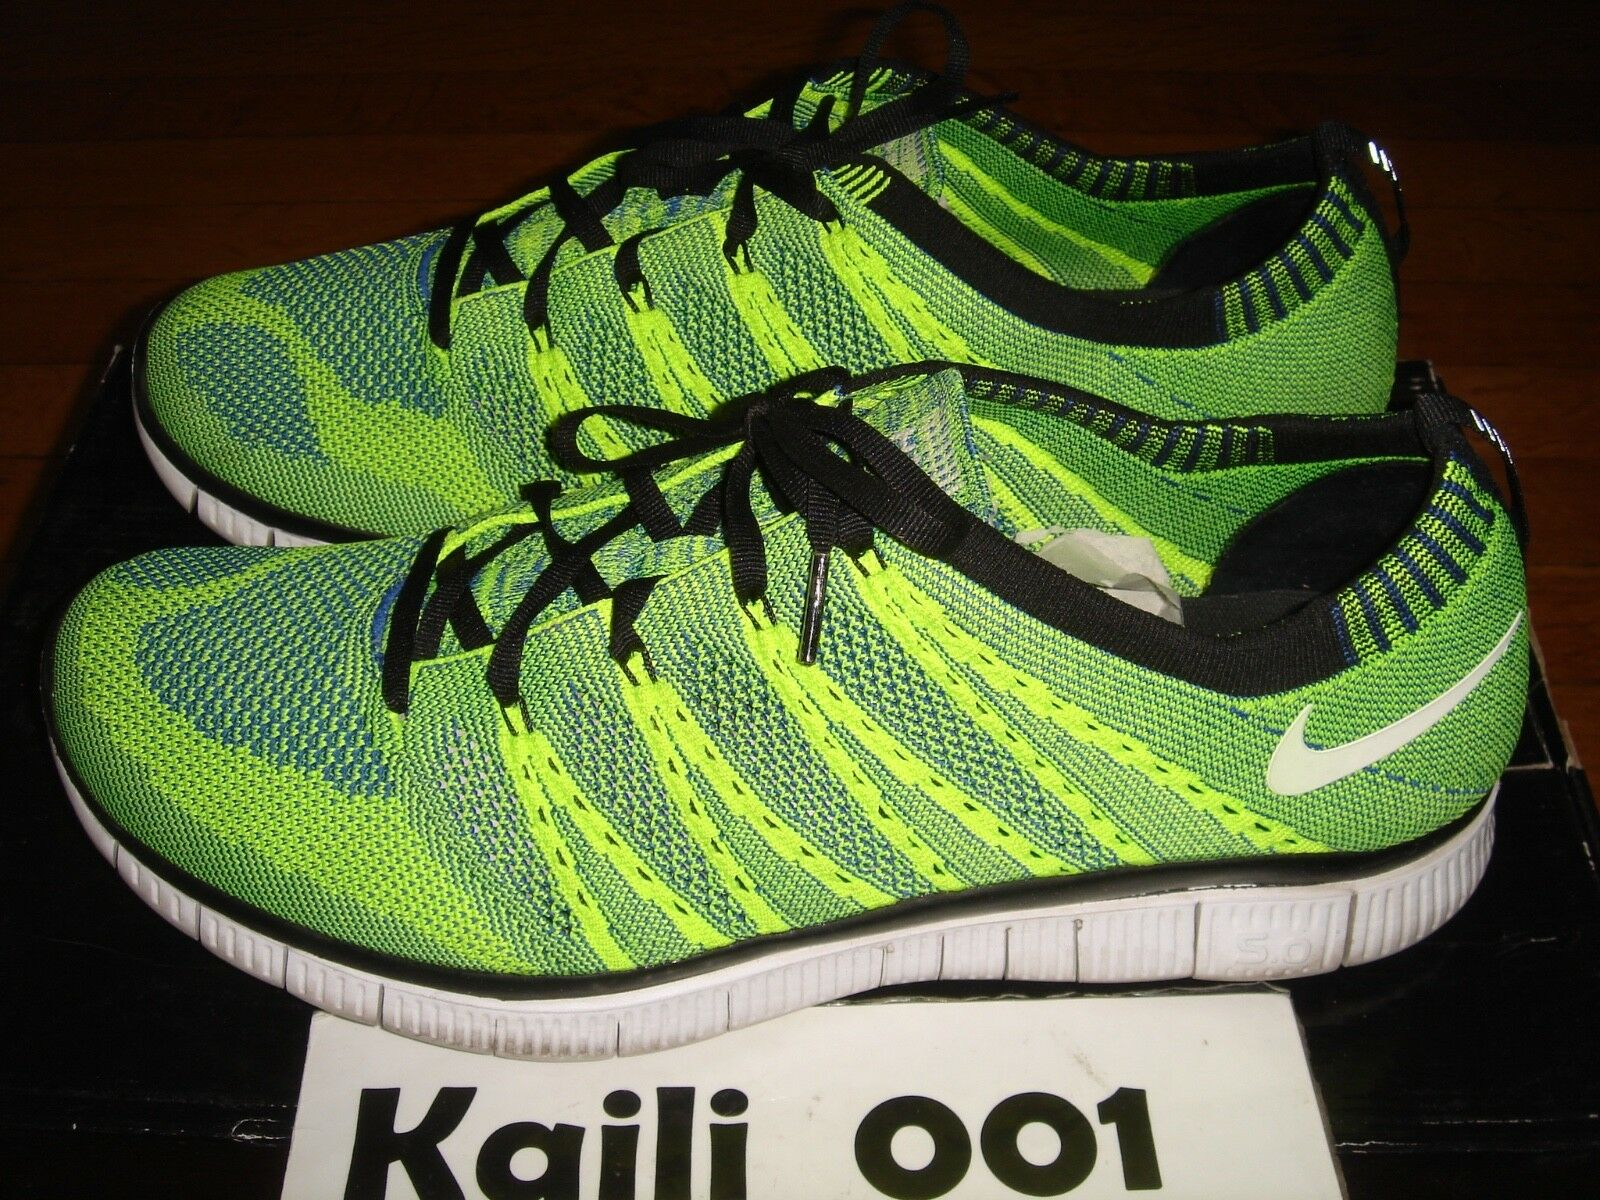 pretty nice 36f75 79405 Worn Nike Free Flyknit HTM SP SP SP Size 12 Green Volt No Box 616171-